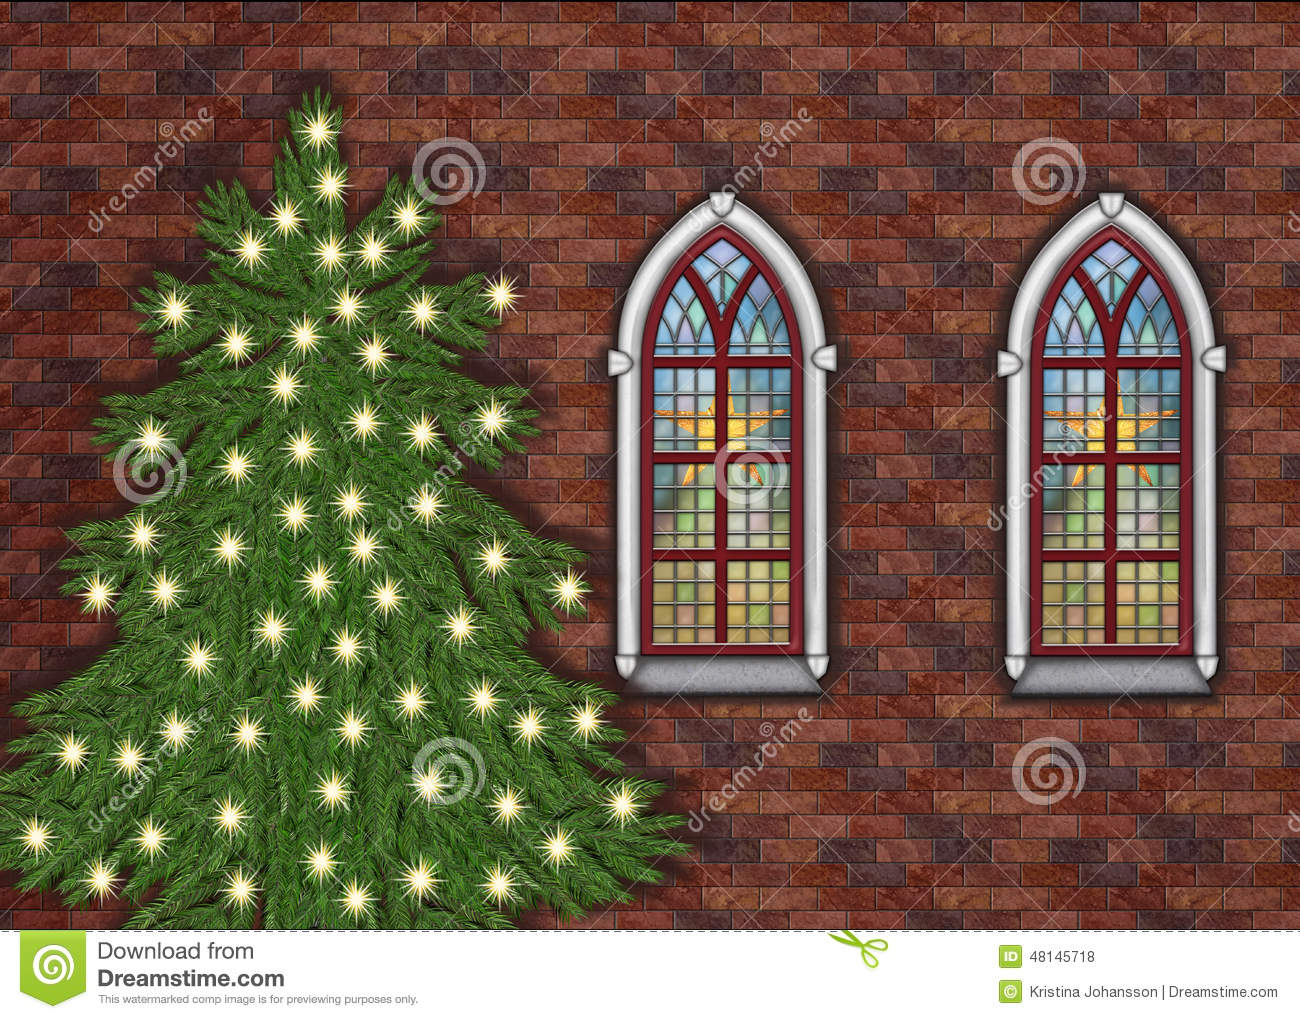 Christmas Church With Stars In The Windows And A Christmastree Outside